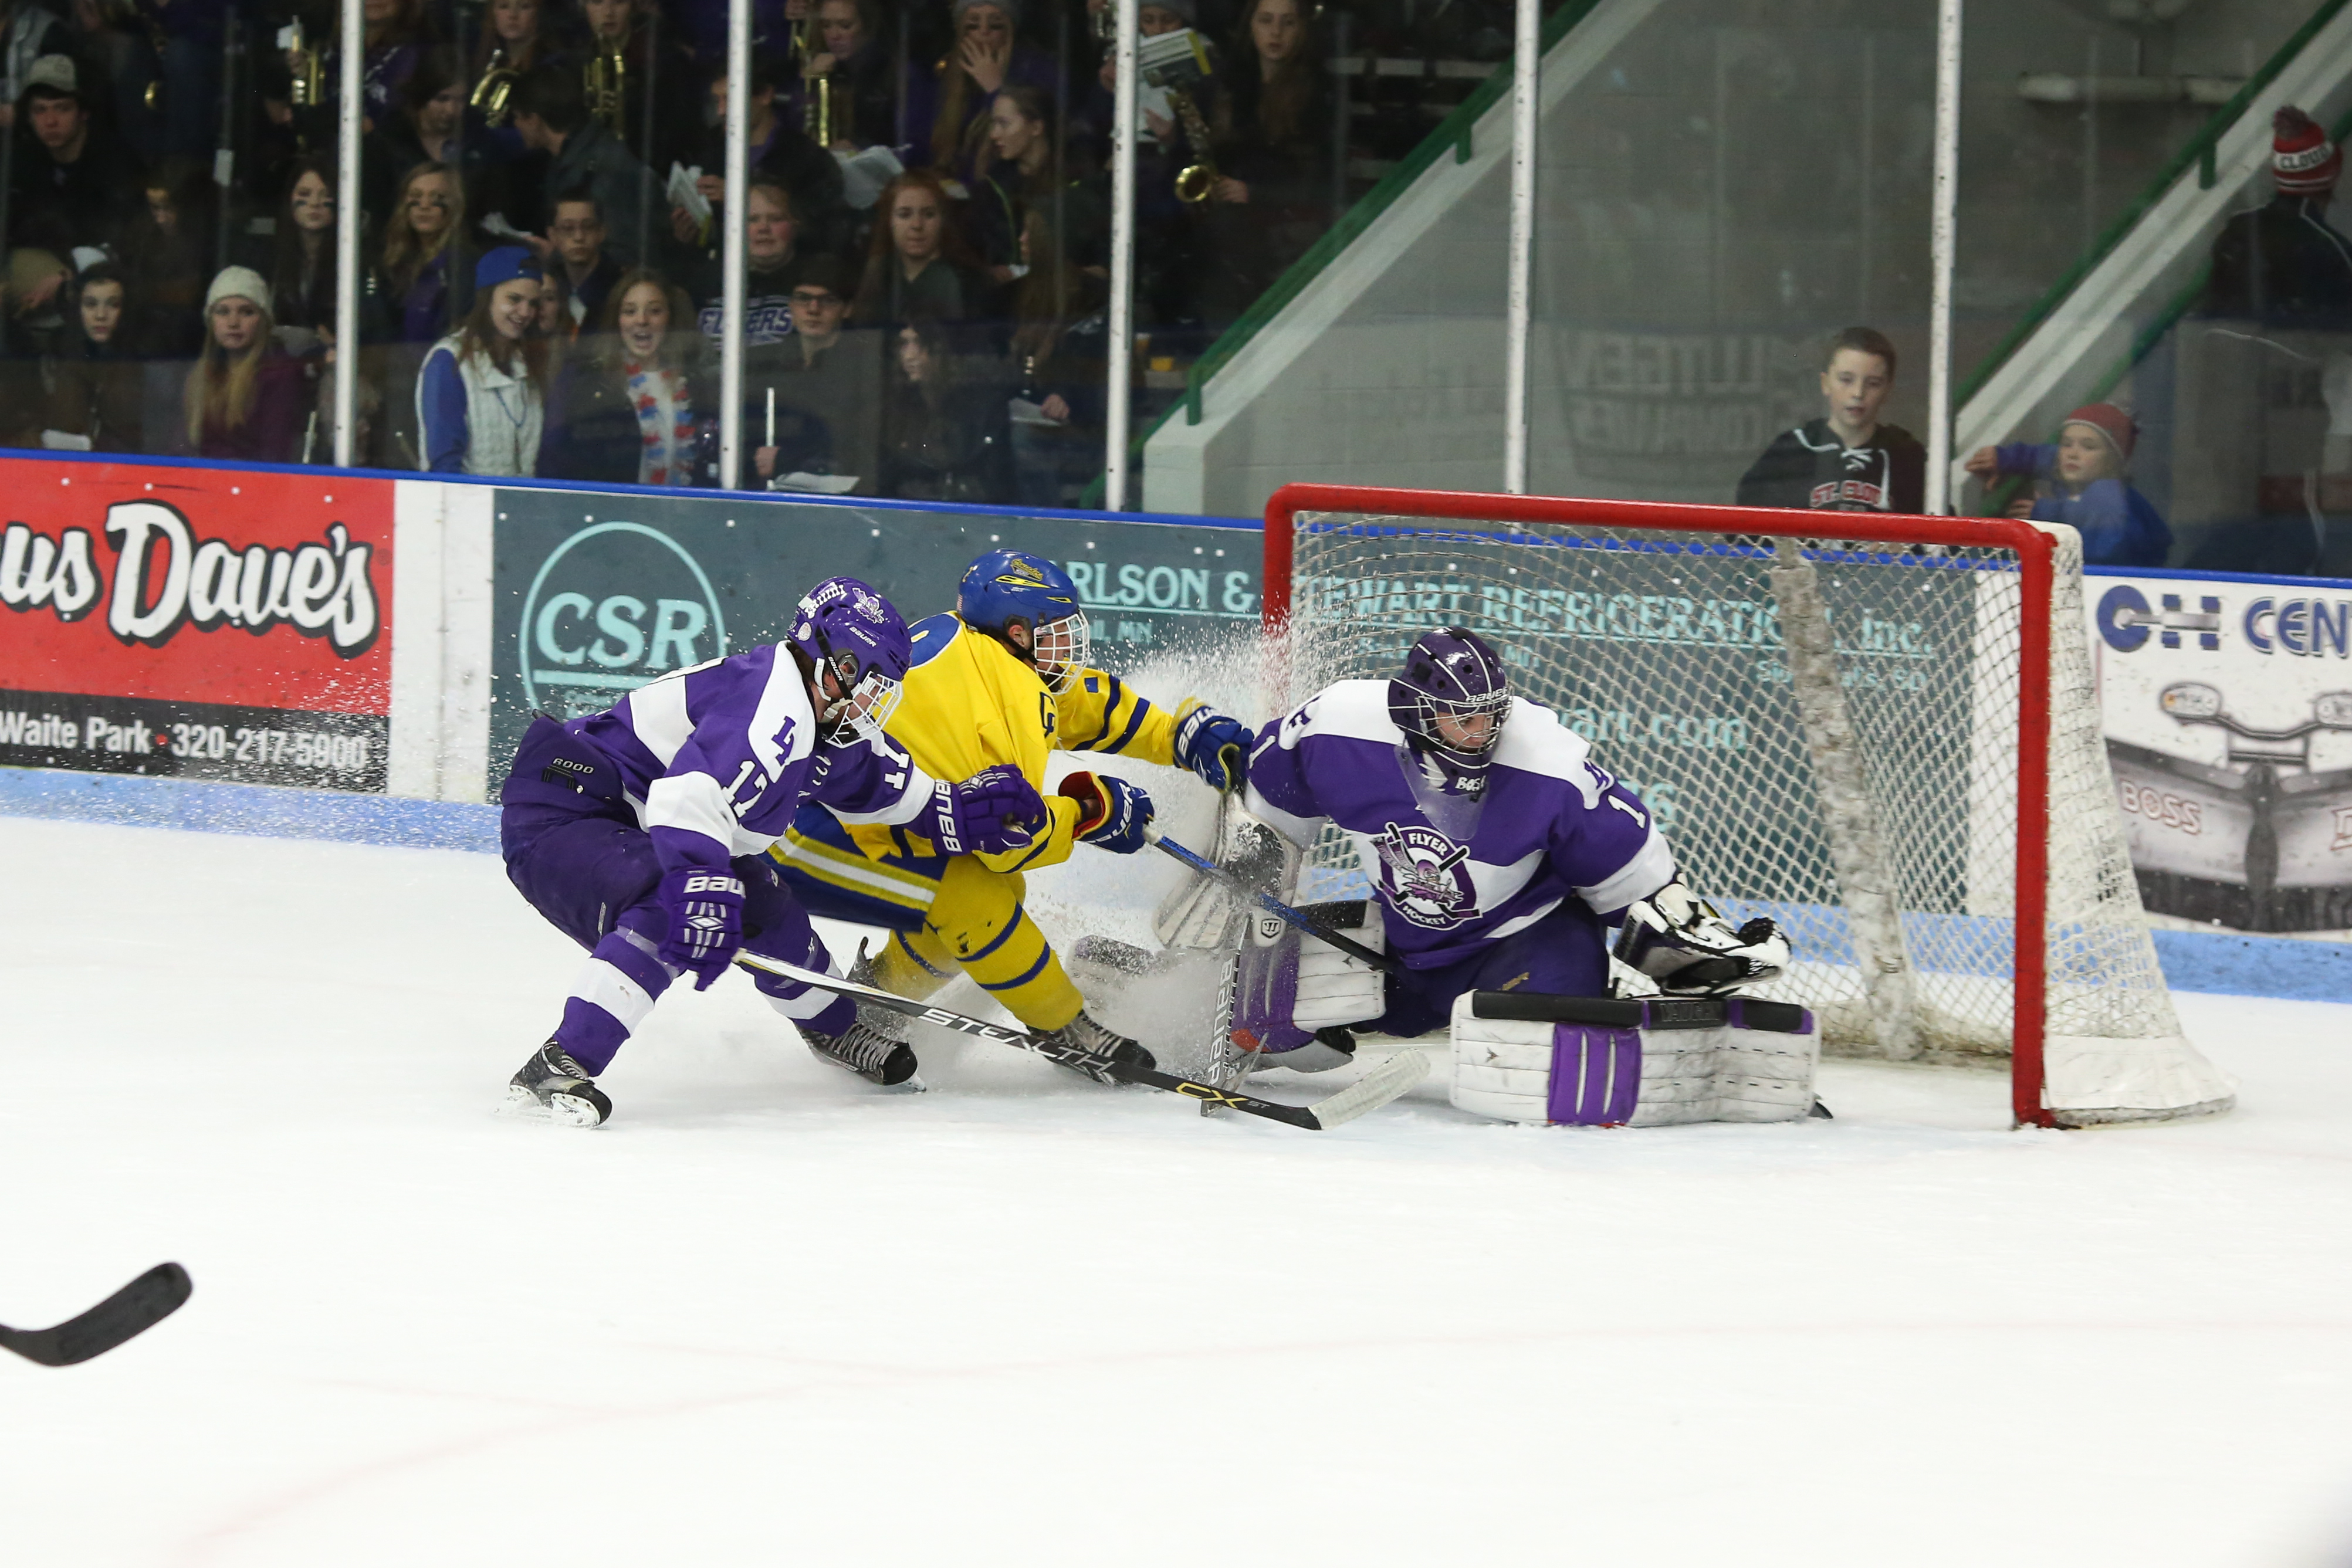 MN H.S.: Spethmann, Petroske Lead St. Cloud Cathedral Back To State